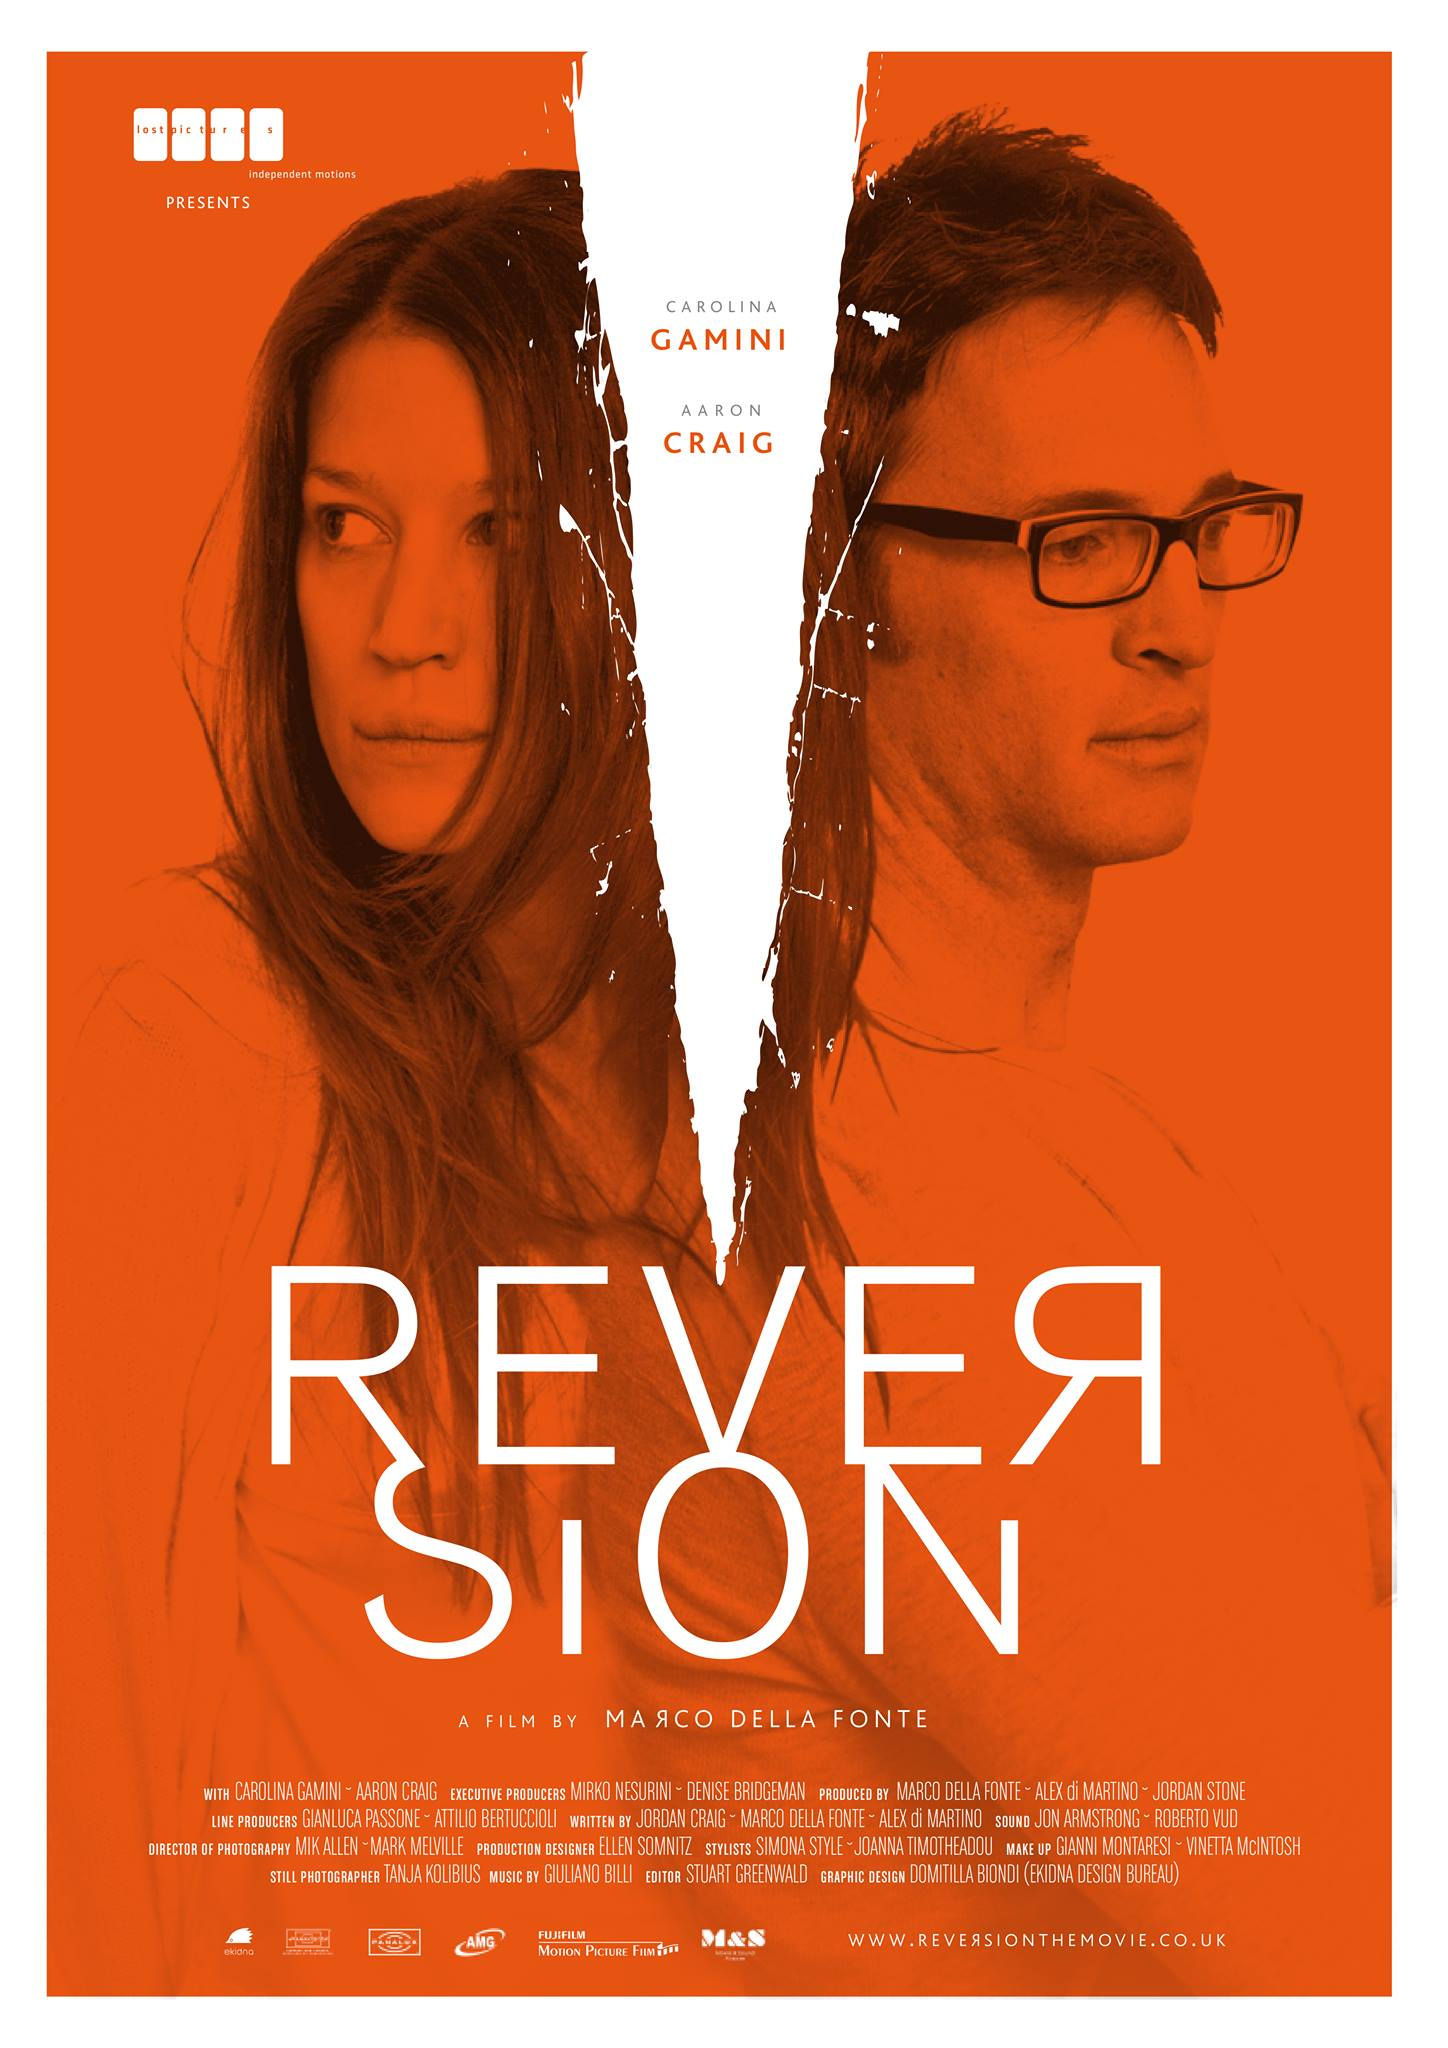 The movie poster for Reversion